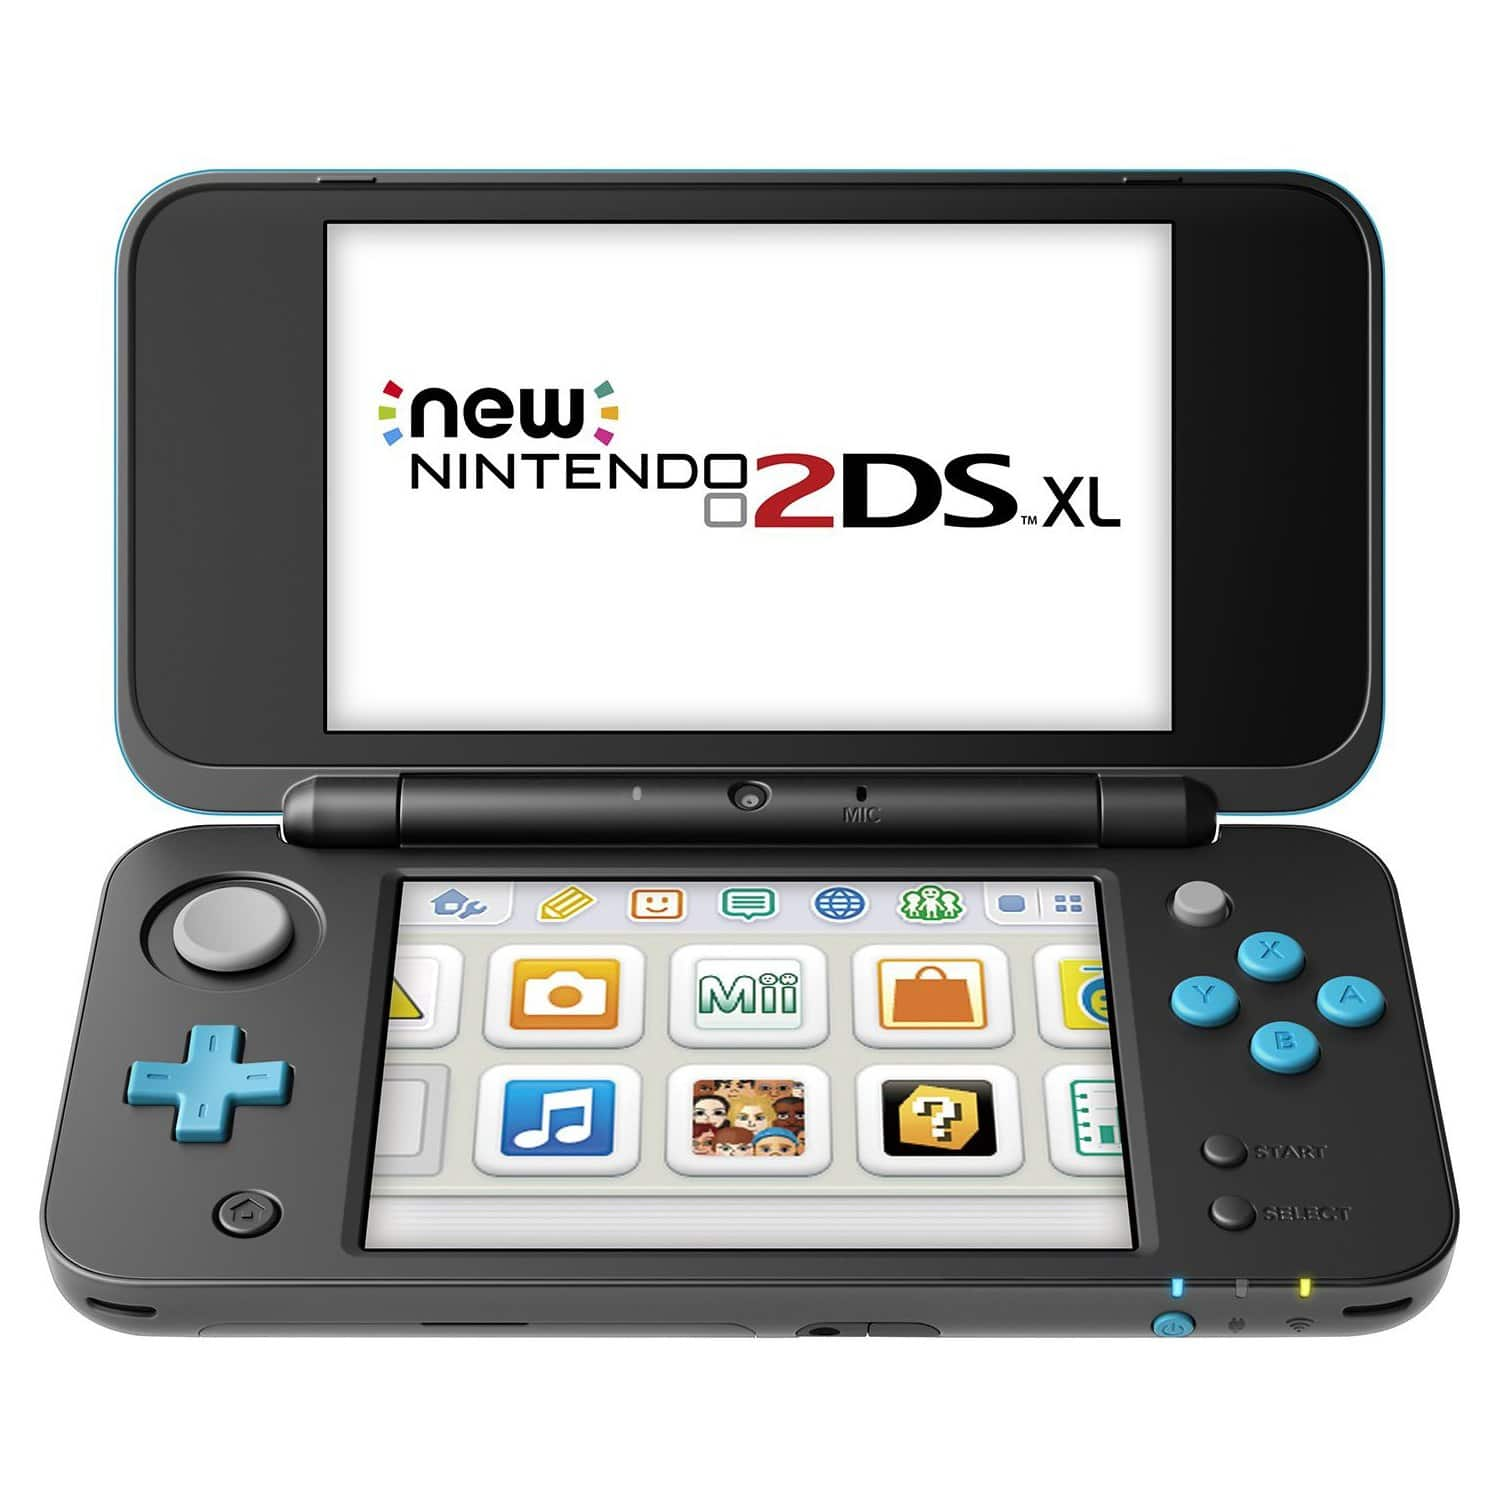 Nintendo 2DS XL Video Game Console w/ NFC Amiibo Reader (Turquoise or White Orange) for $127 AC + Free Shipping